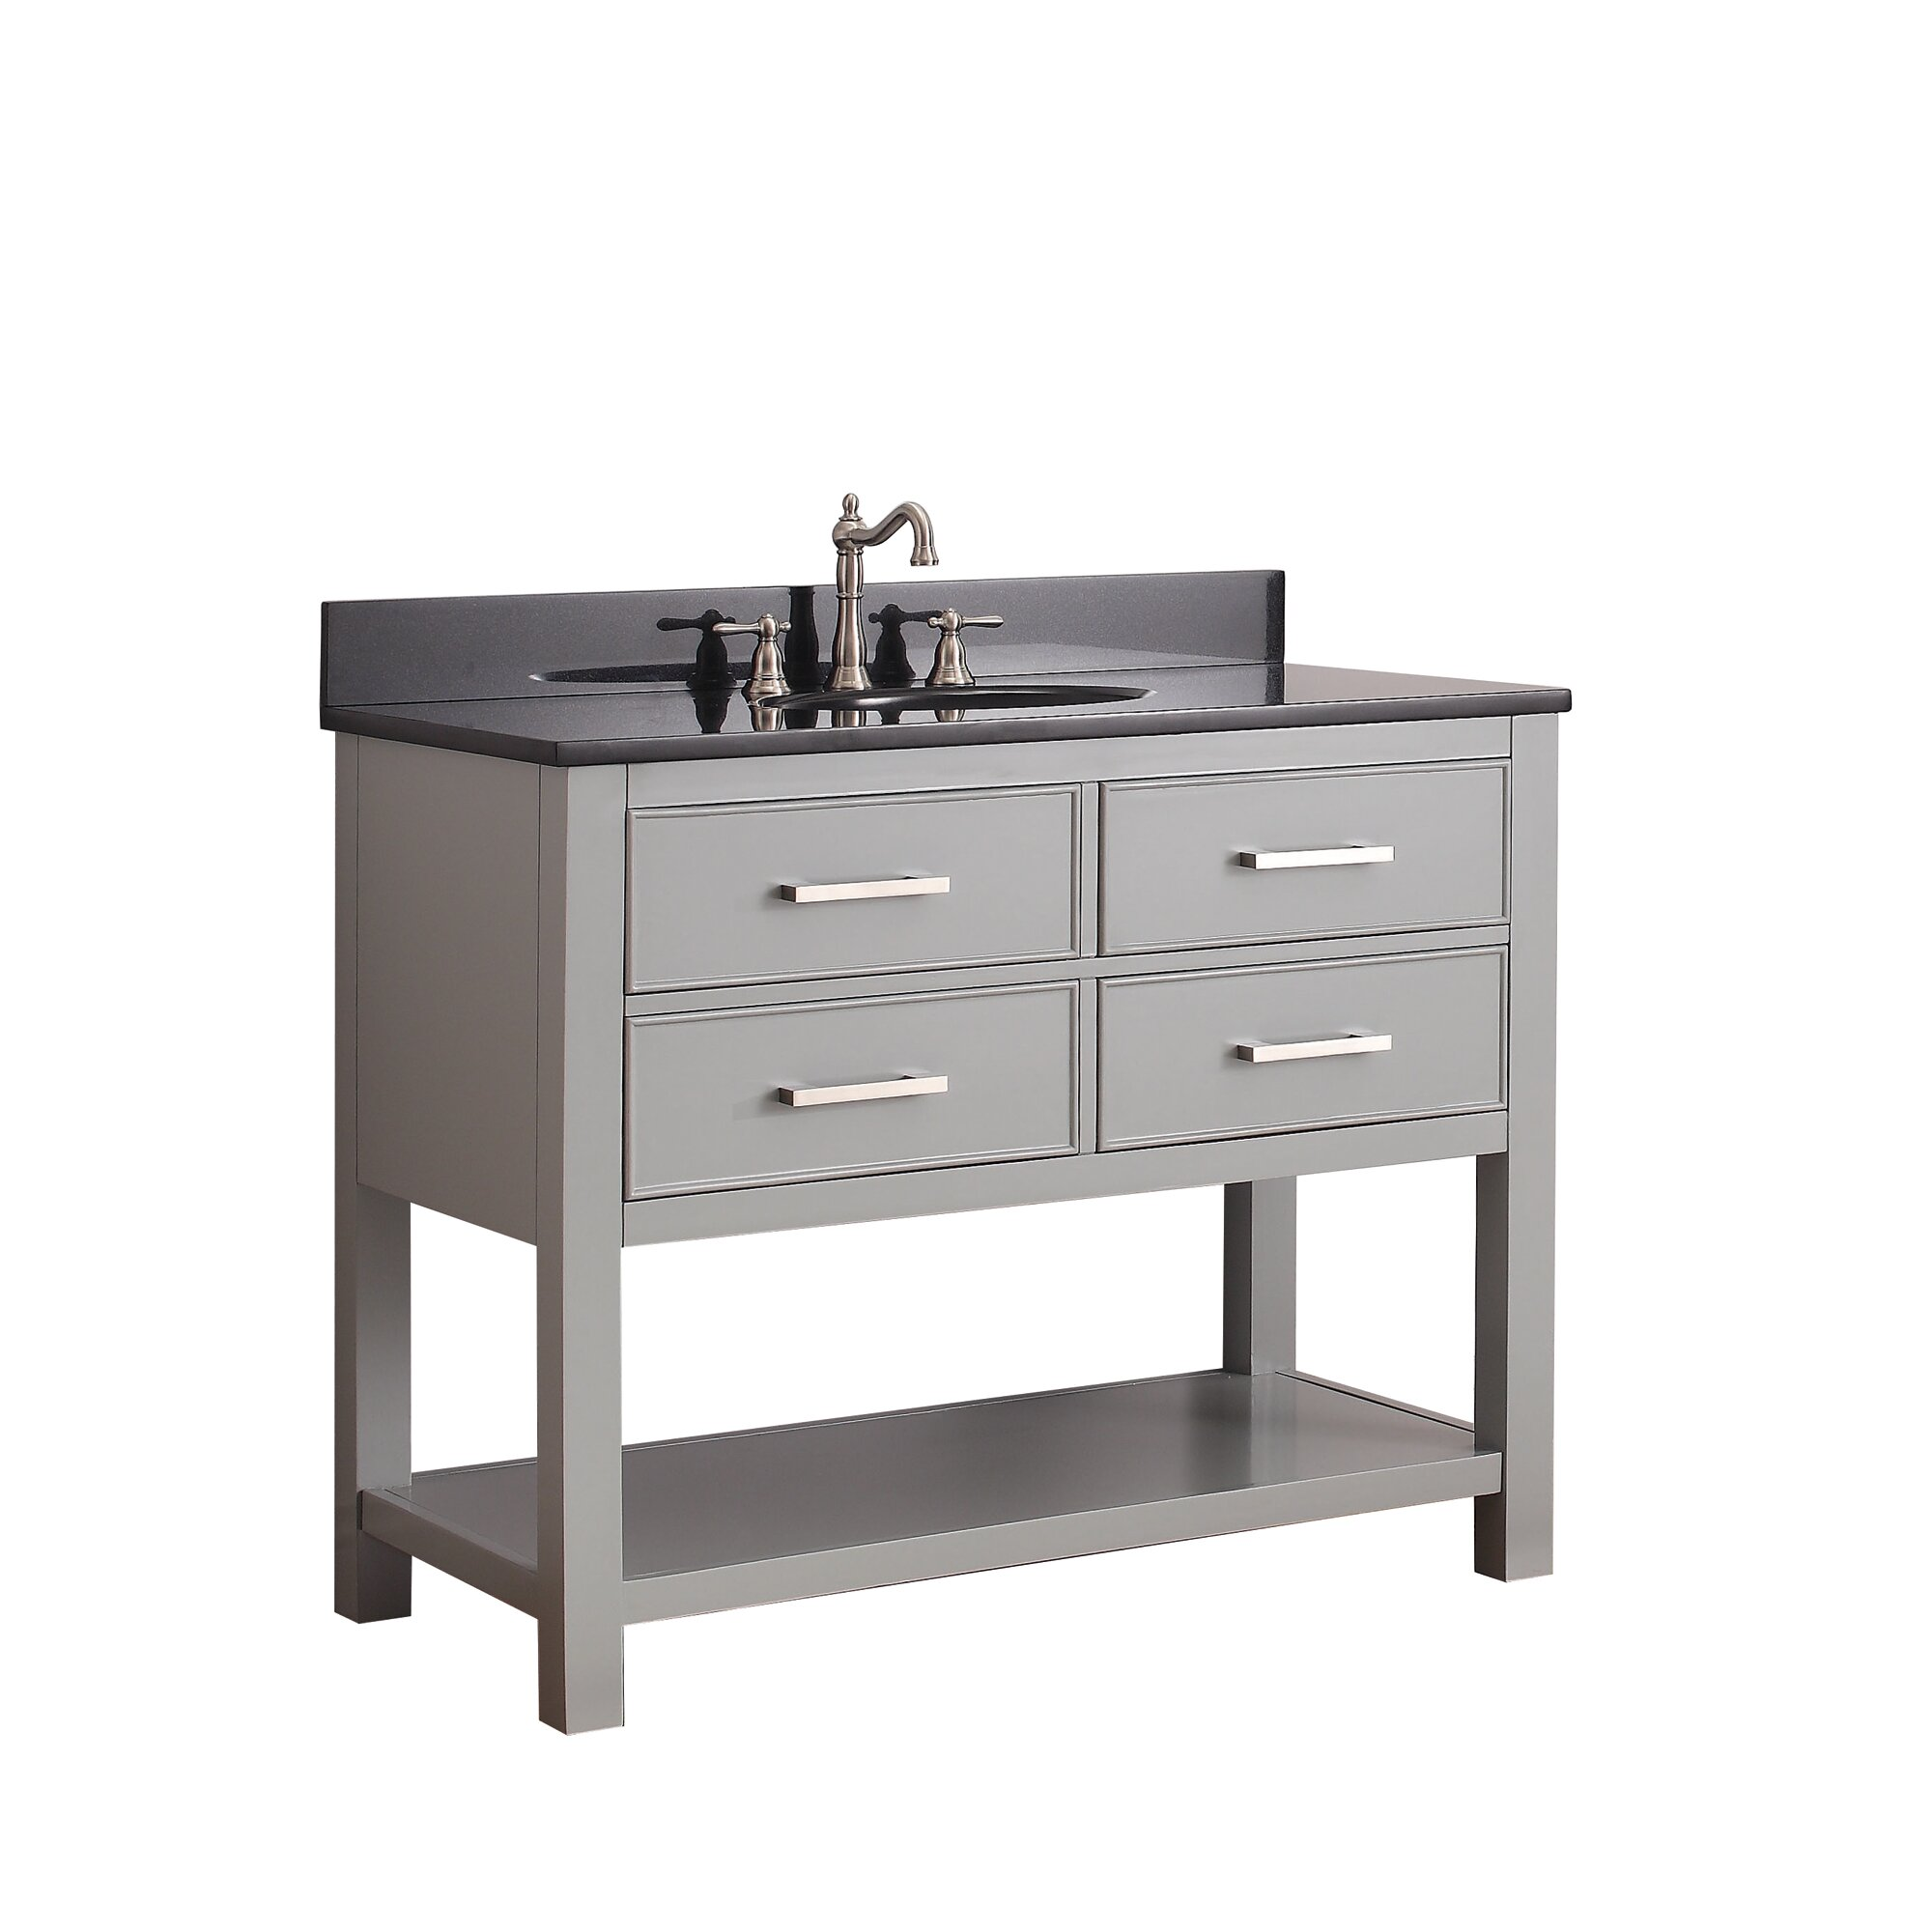 Beautiful 43 Bathroom Vanity #6: Avanity Brooks 43u0026amp;quot; Single Bathroom Vanity Set